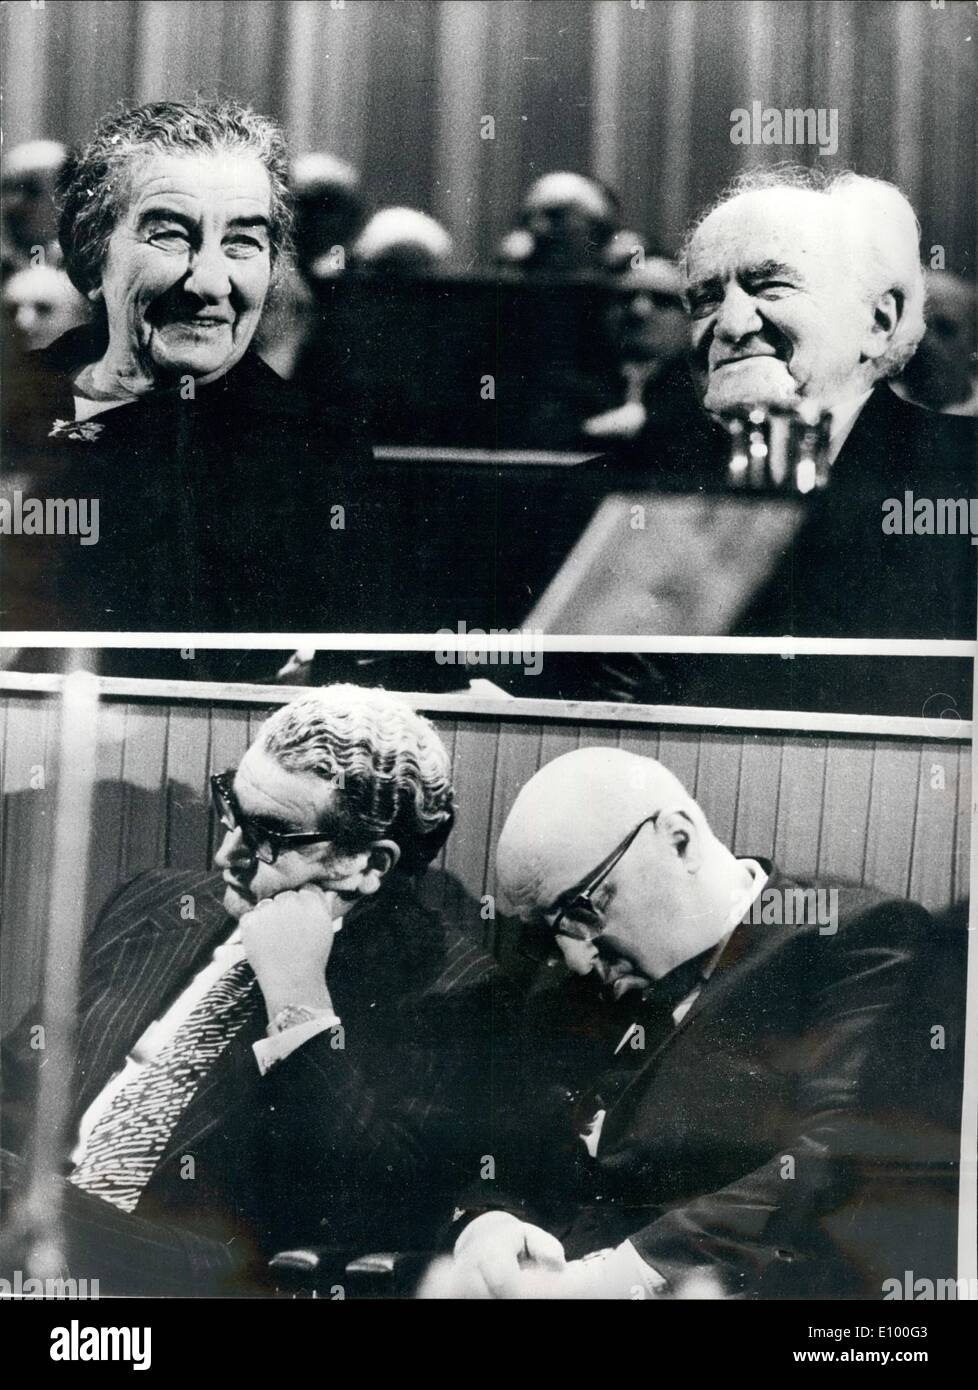 Jan. 27, 1972 - January 27th, 1972 Zionist Congress contrast. Photo Shows: At the opening of the Zionist Congress in Jerusalem recently, the Israel Prime Minister, Mrs. Golda Meir, and D. Ben-Gurion appear to be enjoying the proceedings (top picture) but Finance Minister Mr. P. Saphir and the Treasurer of the Jewish Agency, Mr. L. Dultschin appeared to find it difficult to stay awake (bottom picture) - Stock Image